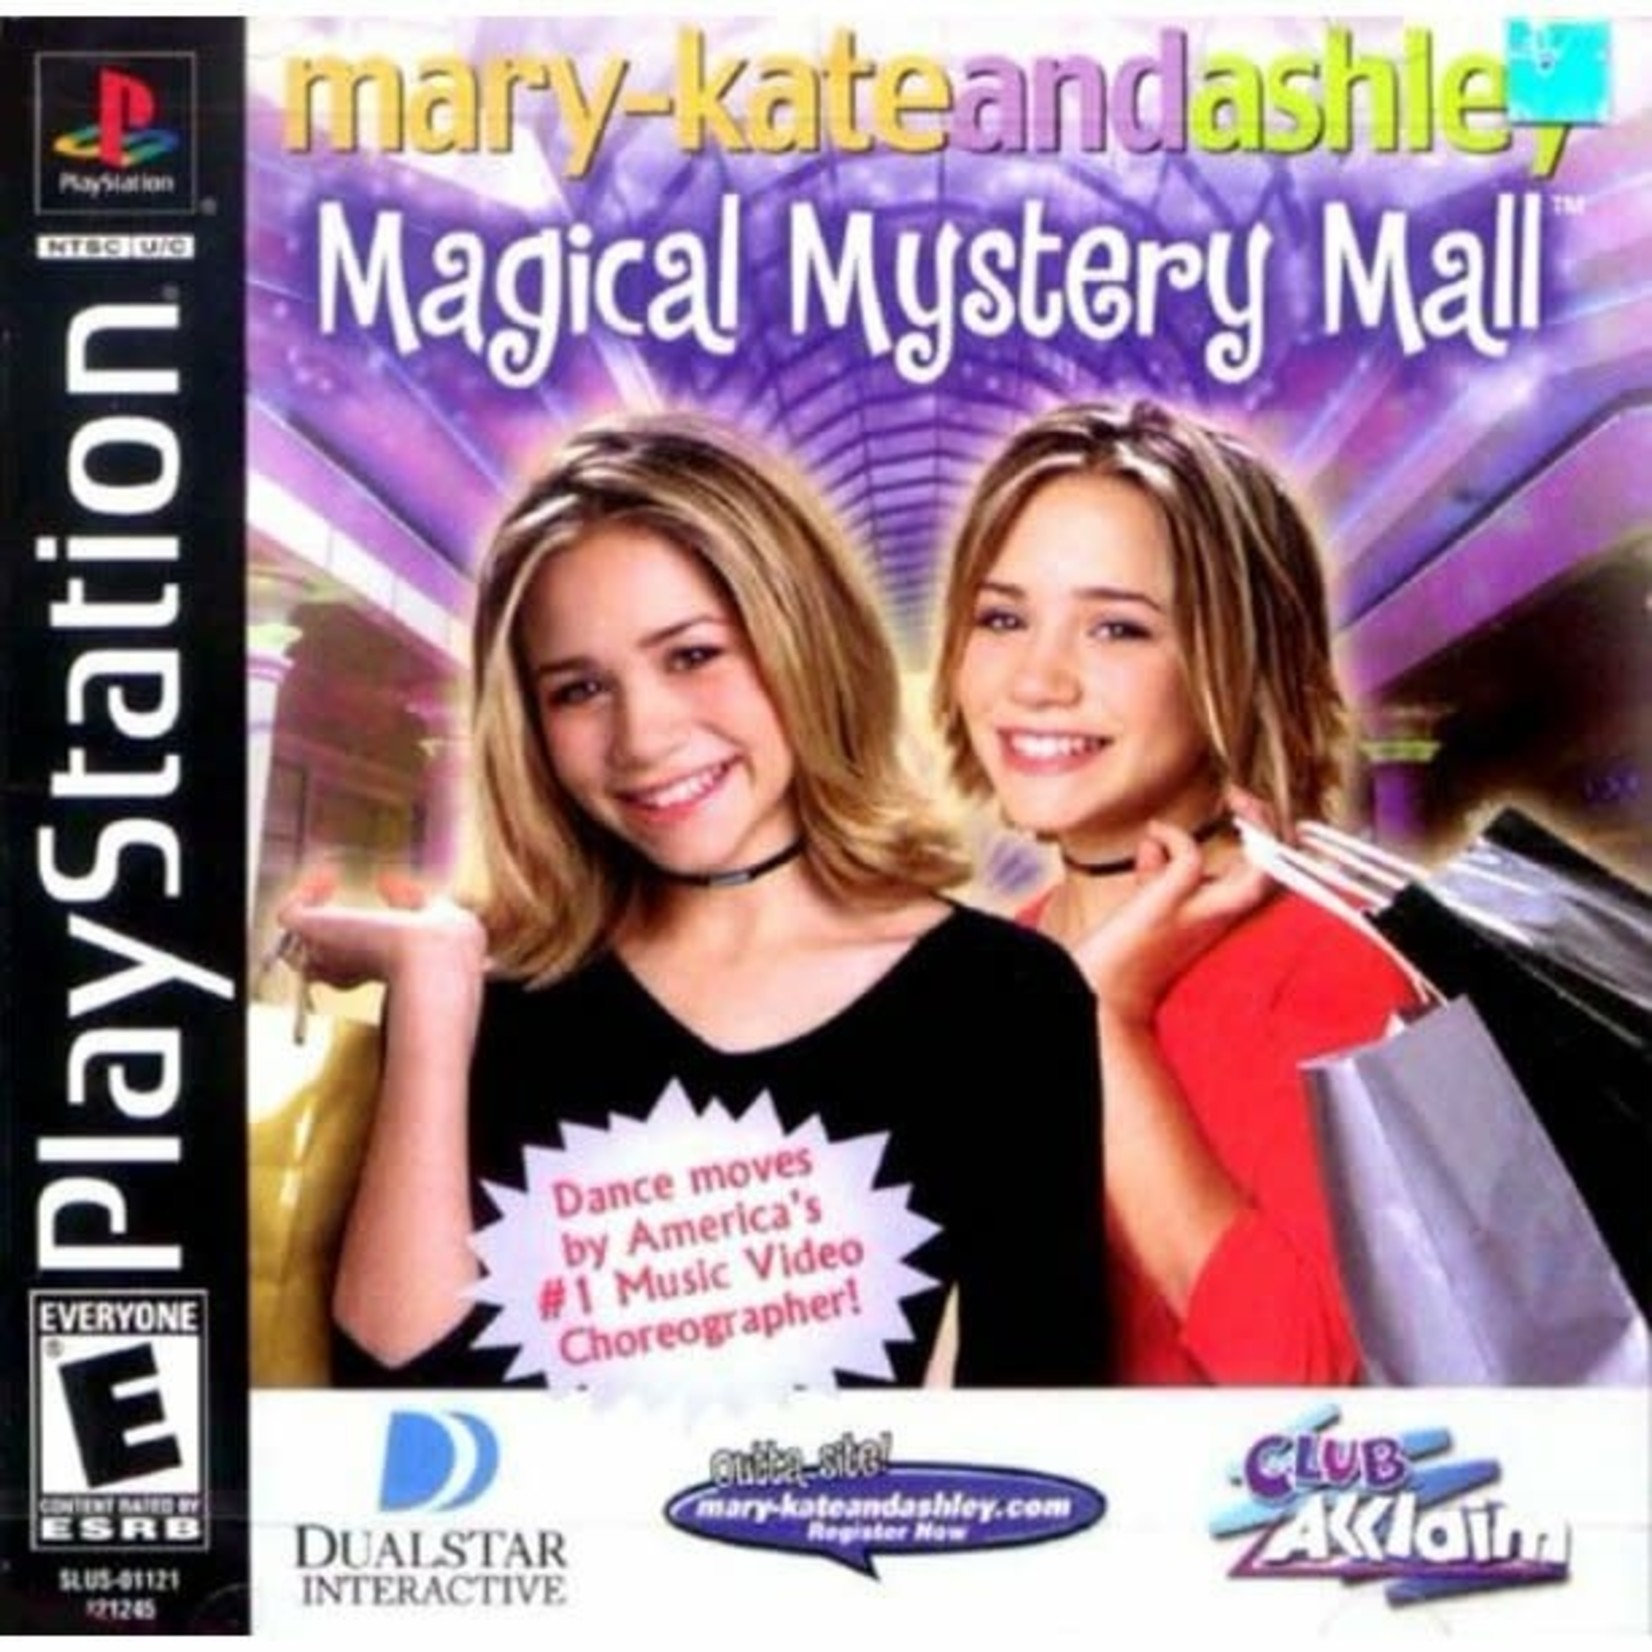 ps1u-Mary-Kate And Ashley Magical Mystery Mall